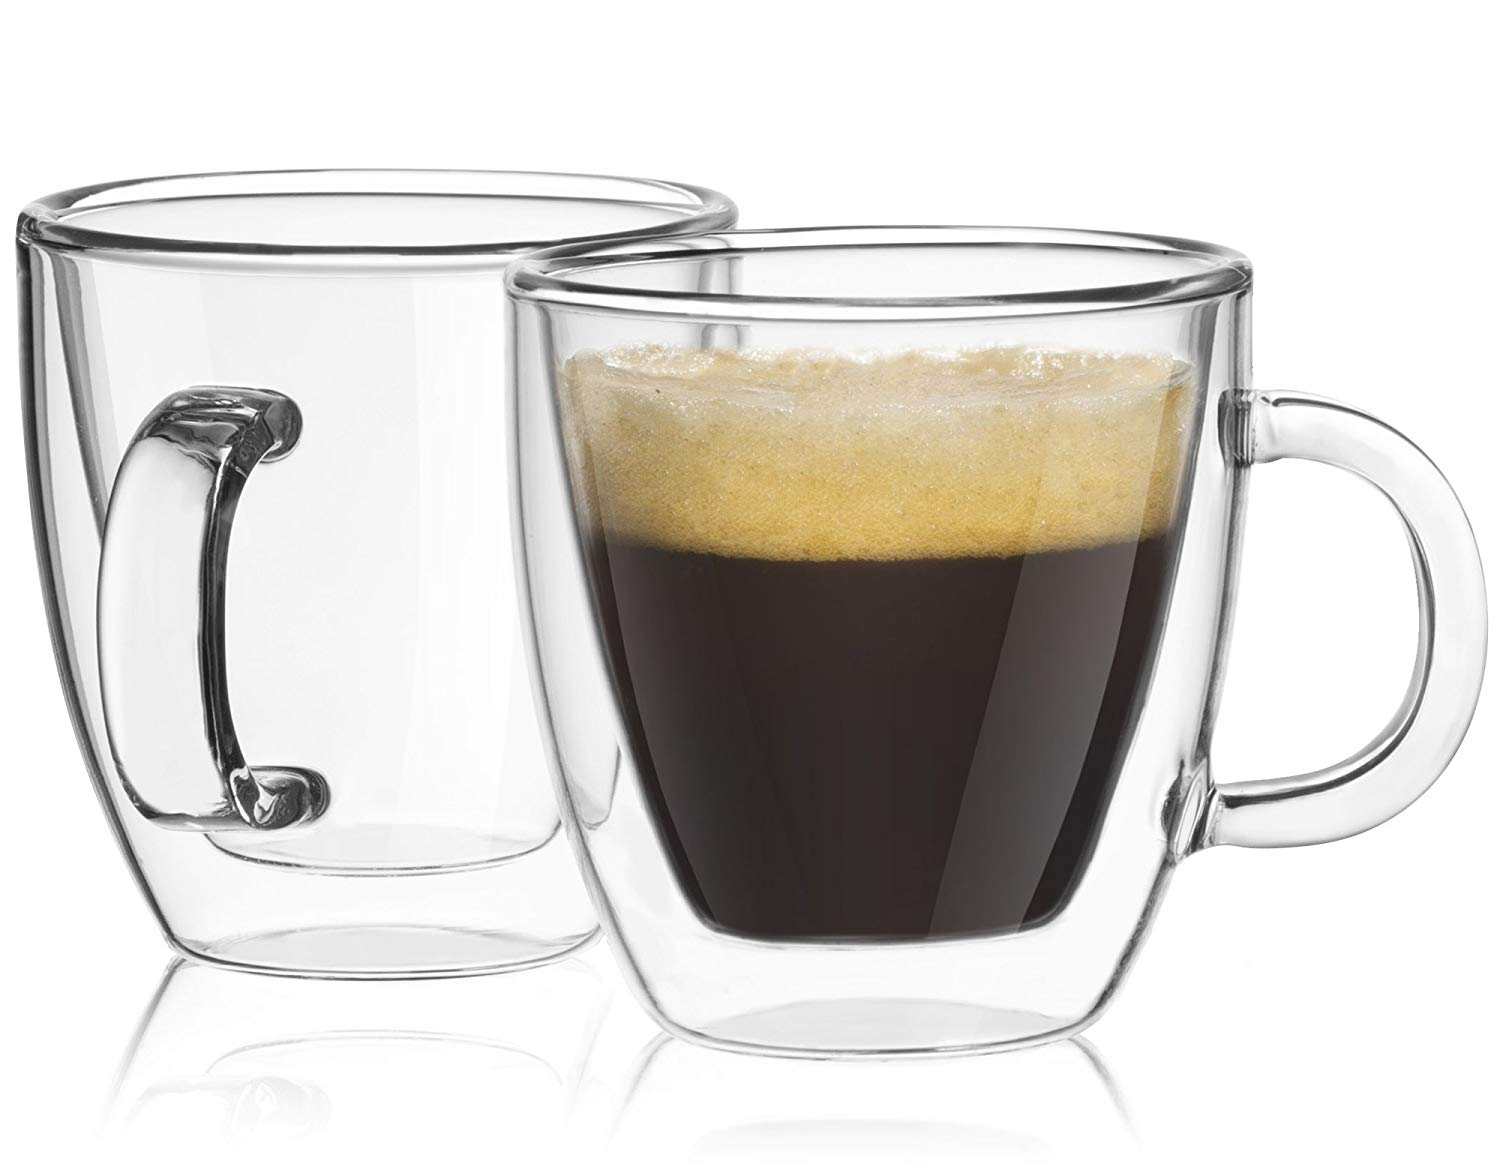 LLESS Savor Double Wall Insulated Glasses Espresso Mugs Set of 2